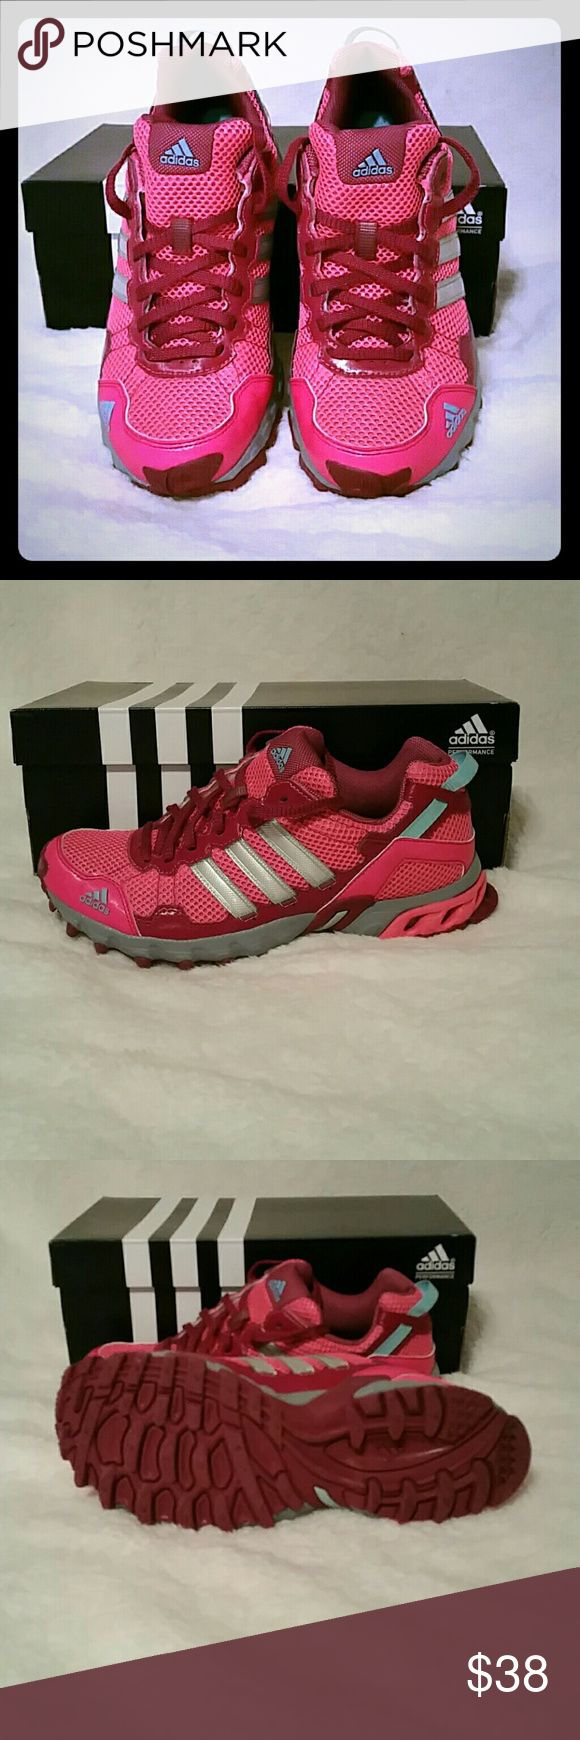 Adidas thrasher trail running shoes Pink adidas trail running shoes. I've never used them because they did not fit.They are in perfect shape. Adidas Shoes Athletic Shoes